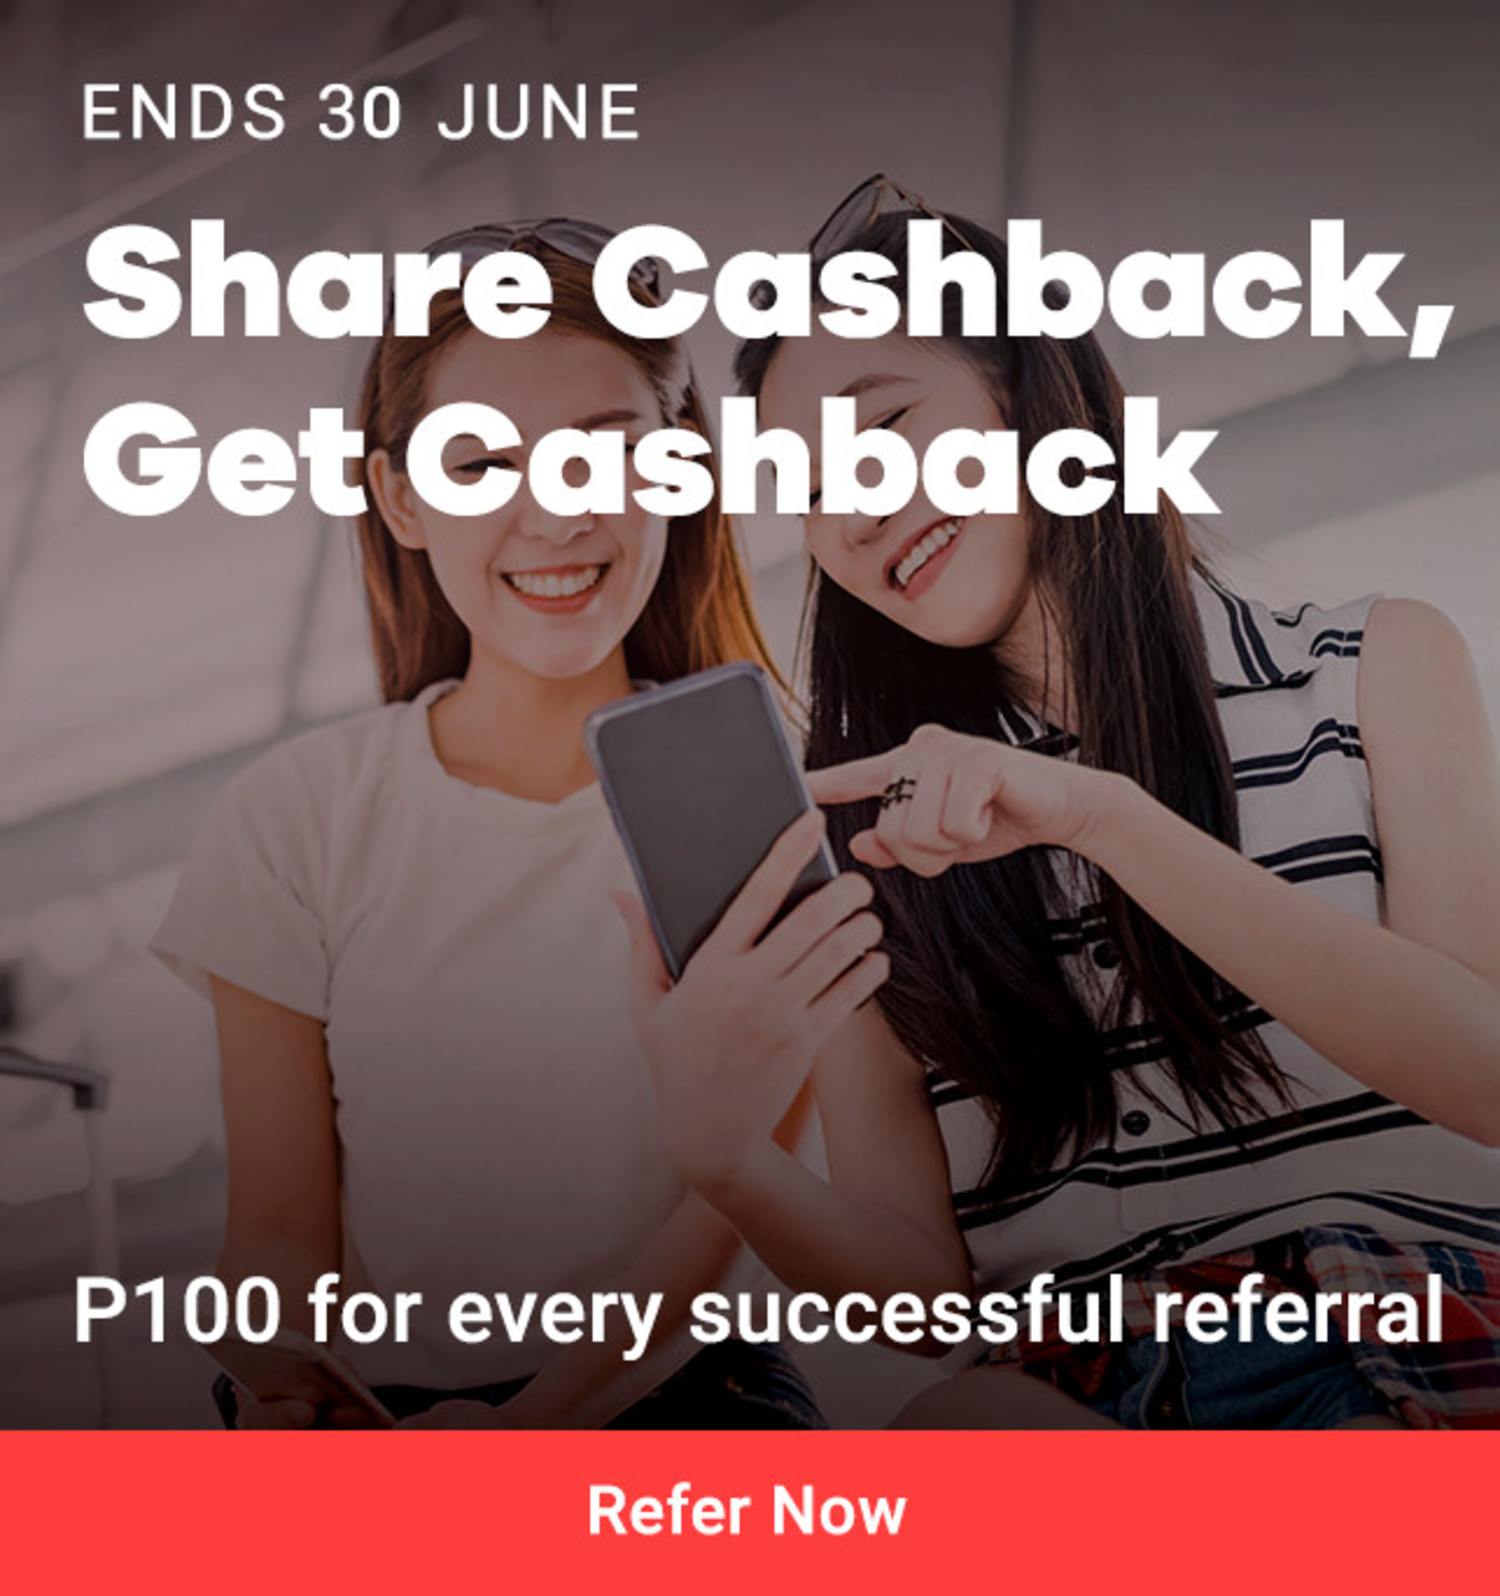 Ends 31 Jun Refer-a-Friend Share Cashback, Get Cashback P100 for every successful referral